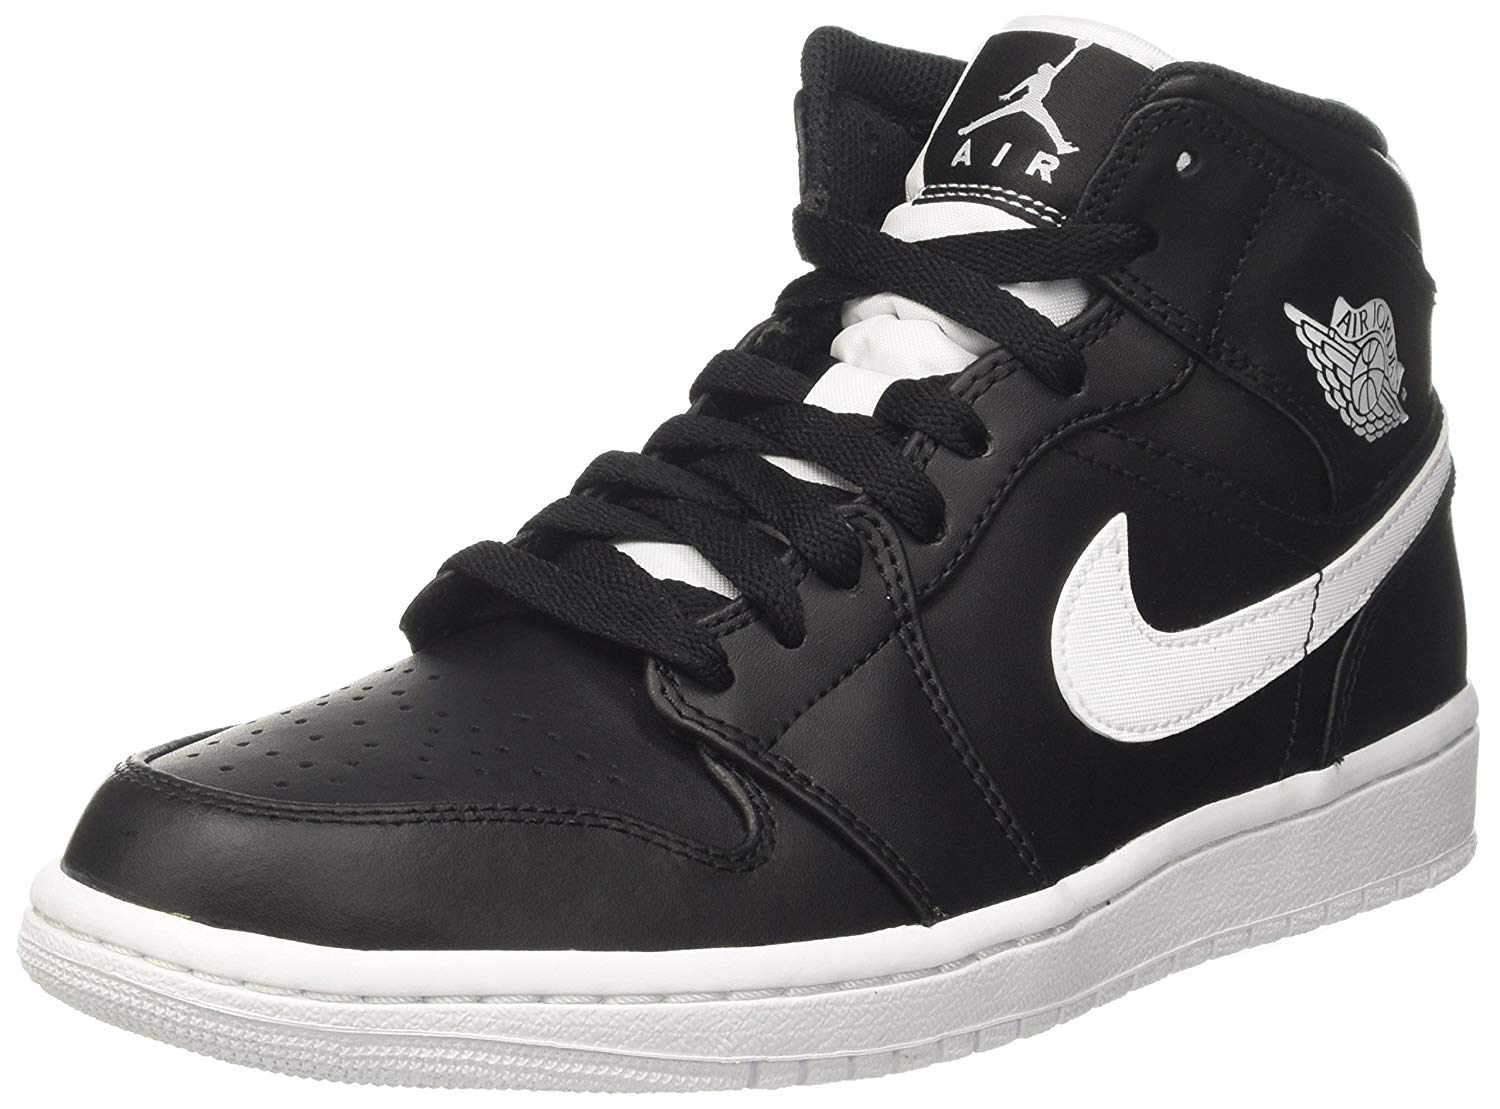 4954a8d7e7473 Buy Air Jordan 1 Mid White - Black - Gym Red in Cheap Price on m ...